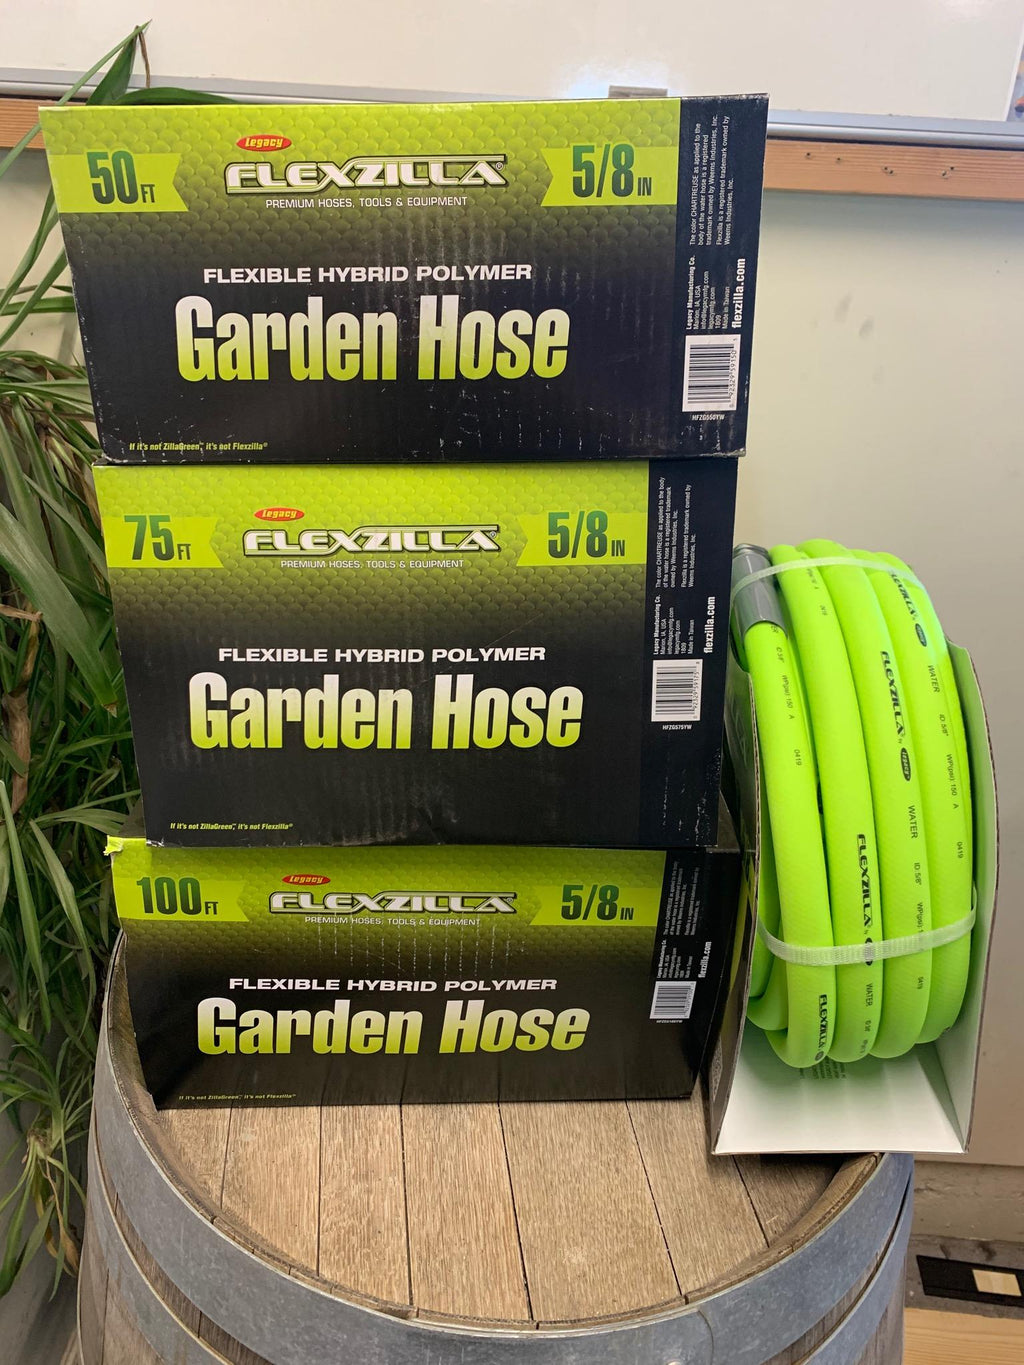 Flexzilla® Garden Hose - Shasta Forest Products, Inc